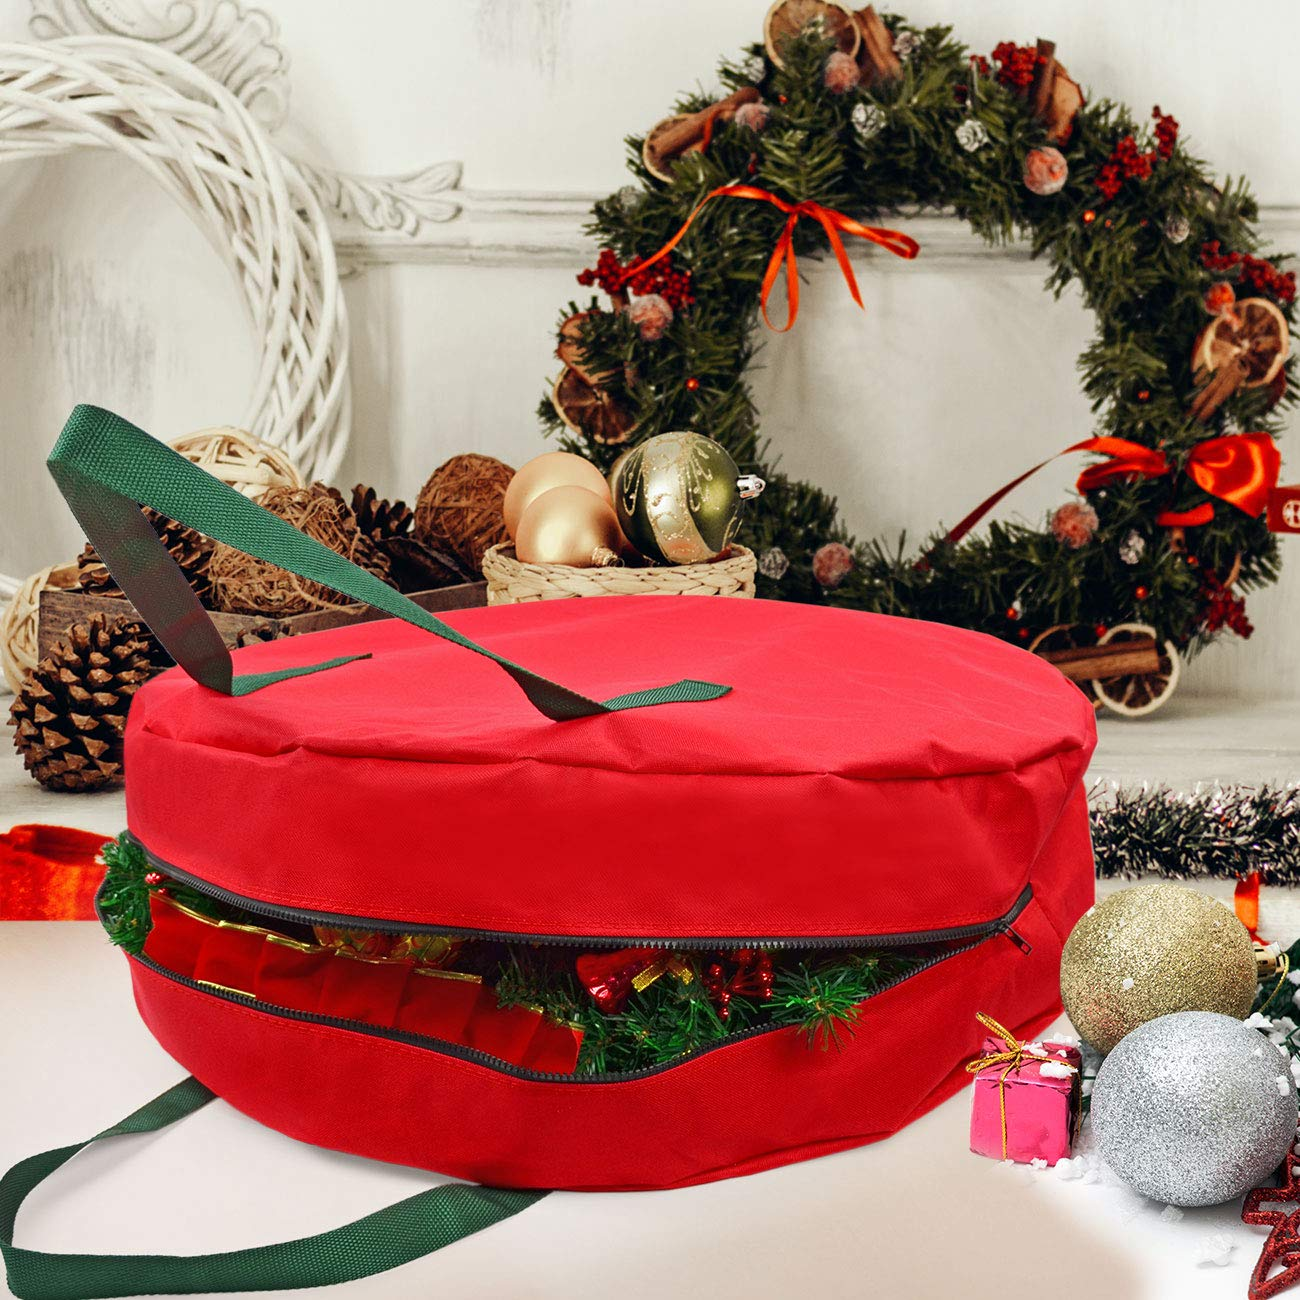 Wreath 24 x 7 Inches Heavy-Duty 600D Oxford Xmas Decorative Wreath Bag with Smooth PU Lining Bag Christmas Storage